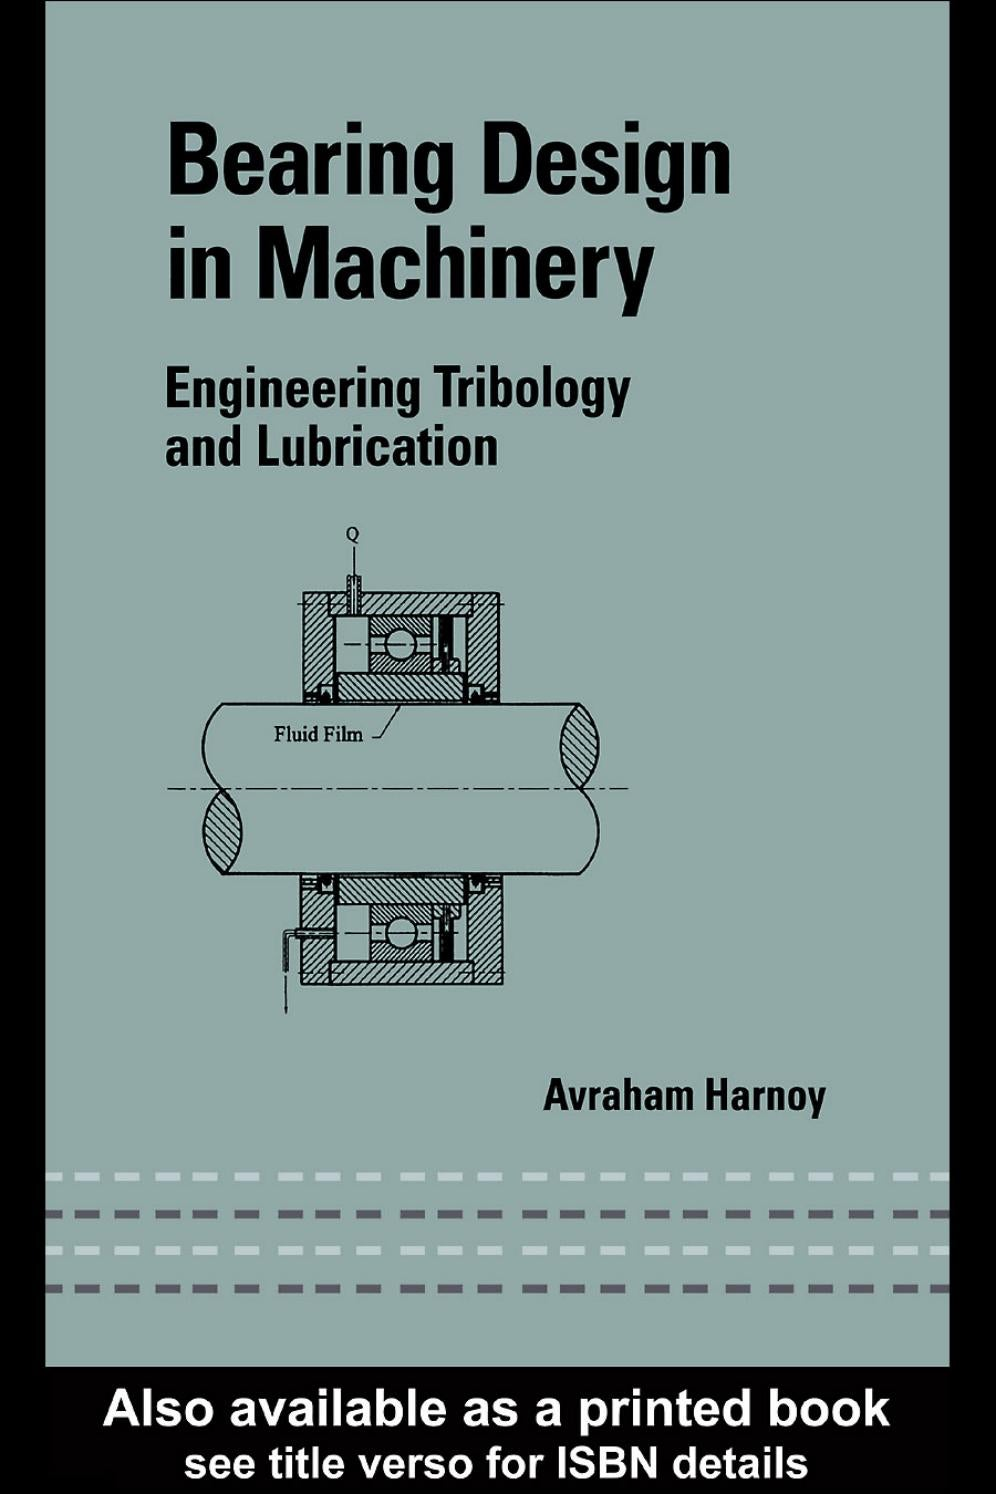 Bearing design in machinery avraham harnoy 2 1 499 by s bearing design in machinery avraham harnoy 2 1 499 by sdharmaraj issuu fandeluxe Image collections